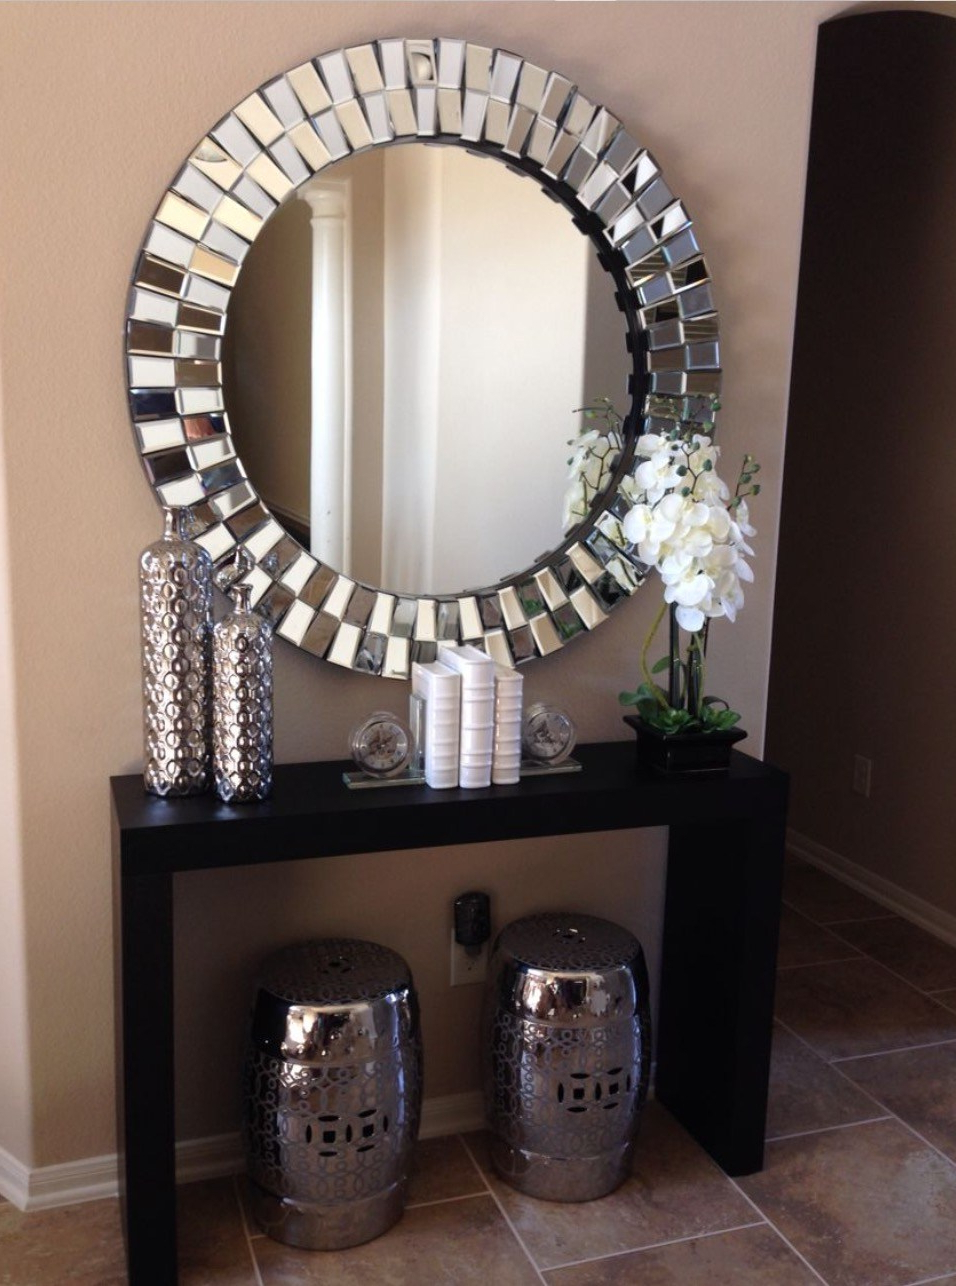 Famous Round Decorative Wall Mirrors : Decorative Wall Mirrors Regarding Decorative Round Wall Mirrors (View 11 of 20)